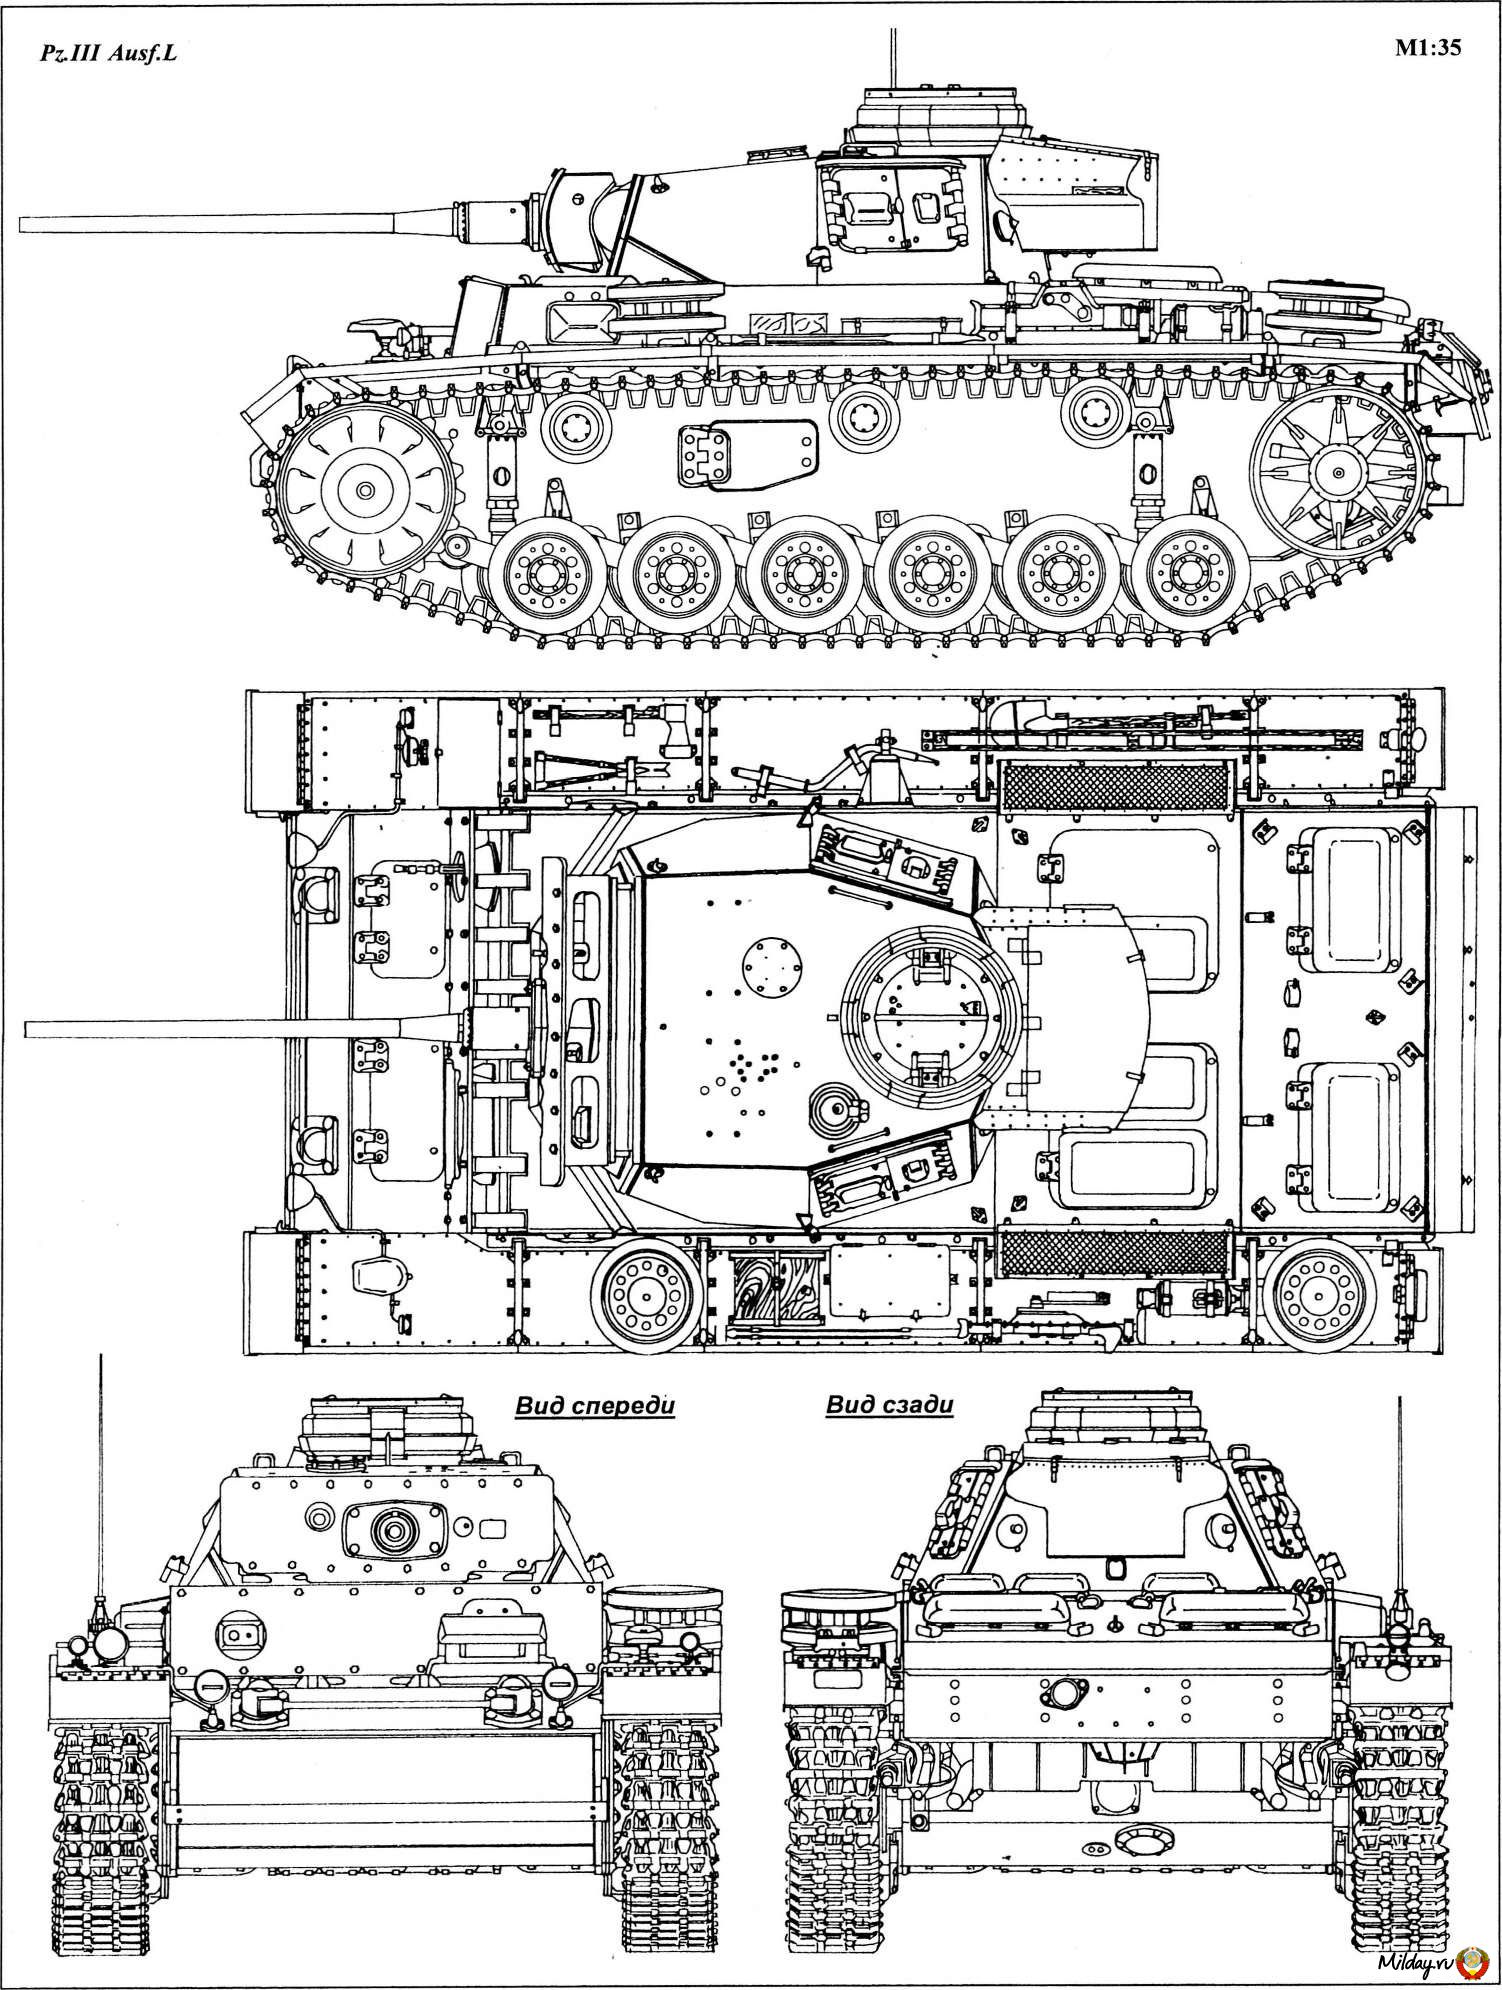 [Request] Any timepieces that have a Panzer III kind of